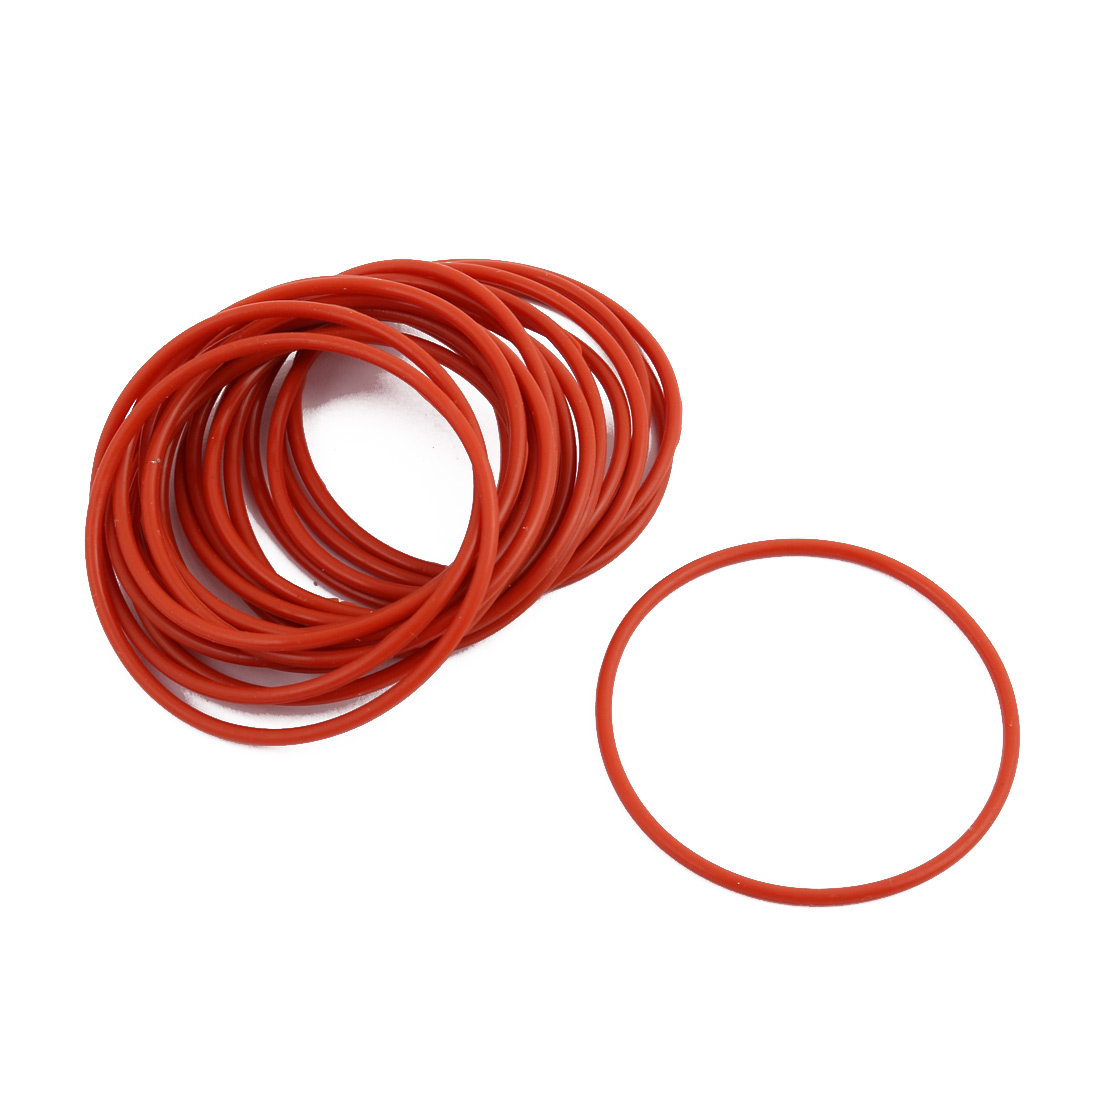 20Pcs Red Round Nitrile Butadiene Rubber NBR O-Ring 50mm OD 1.9mm Width